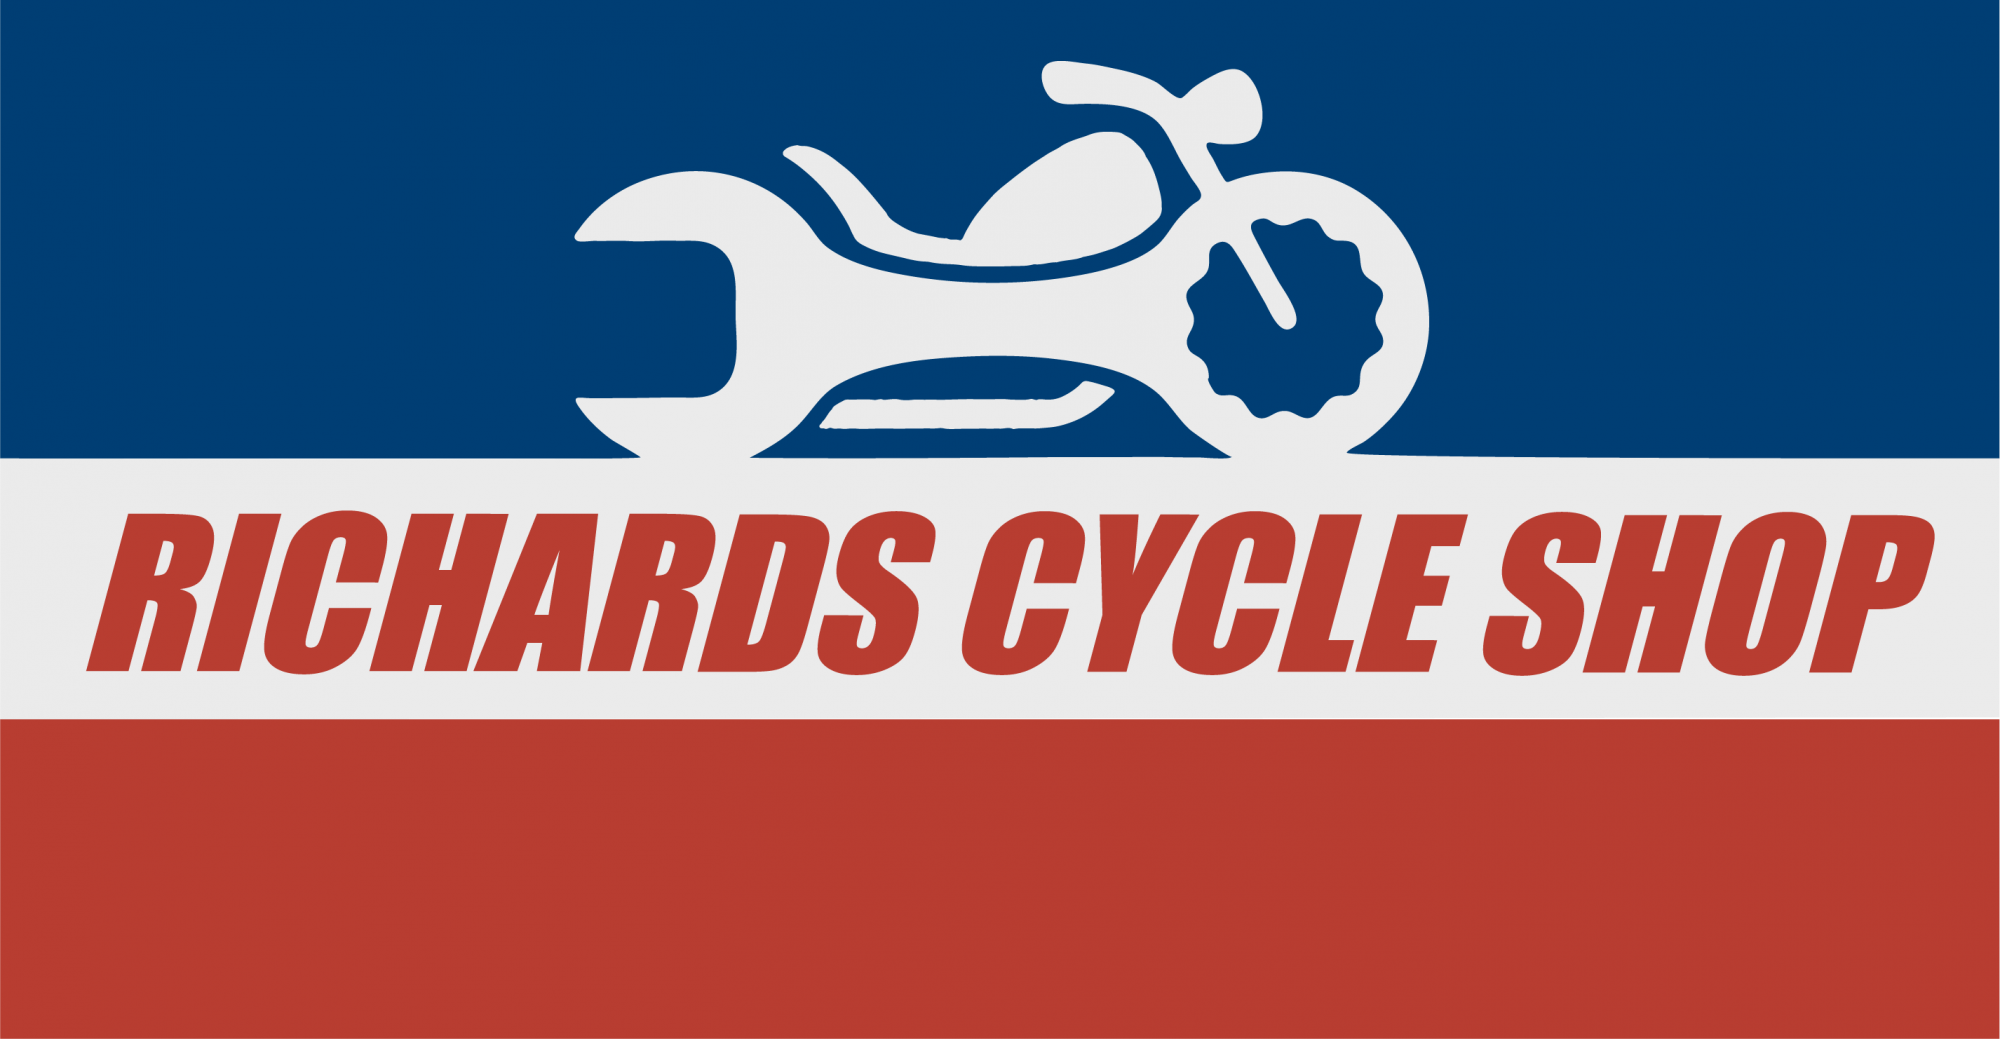 Arkansas Cycle Works logo